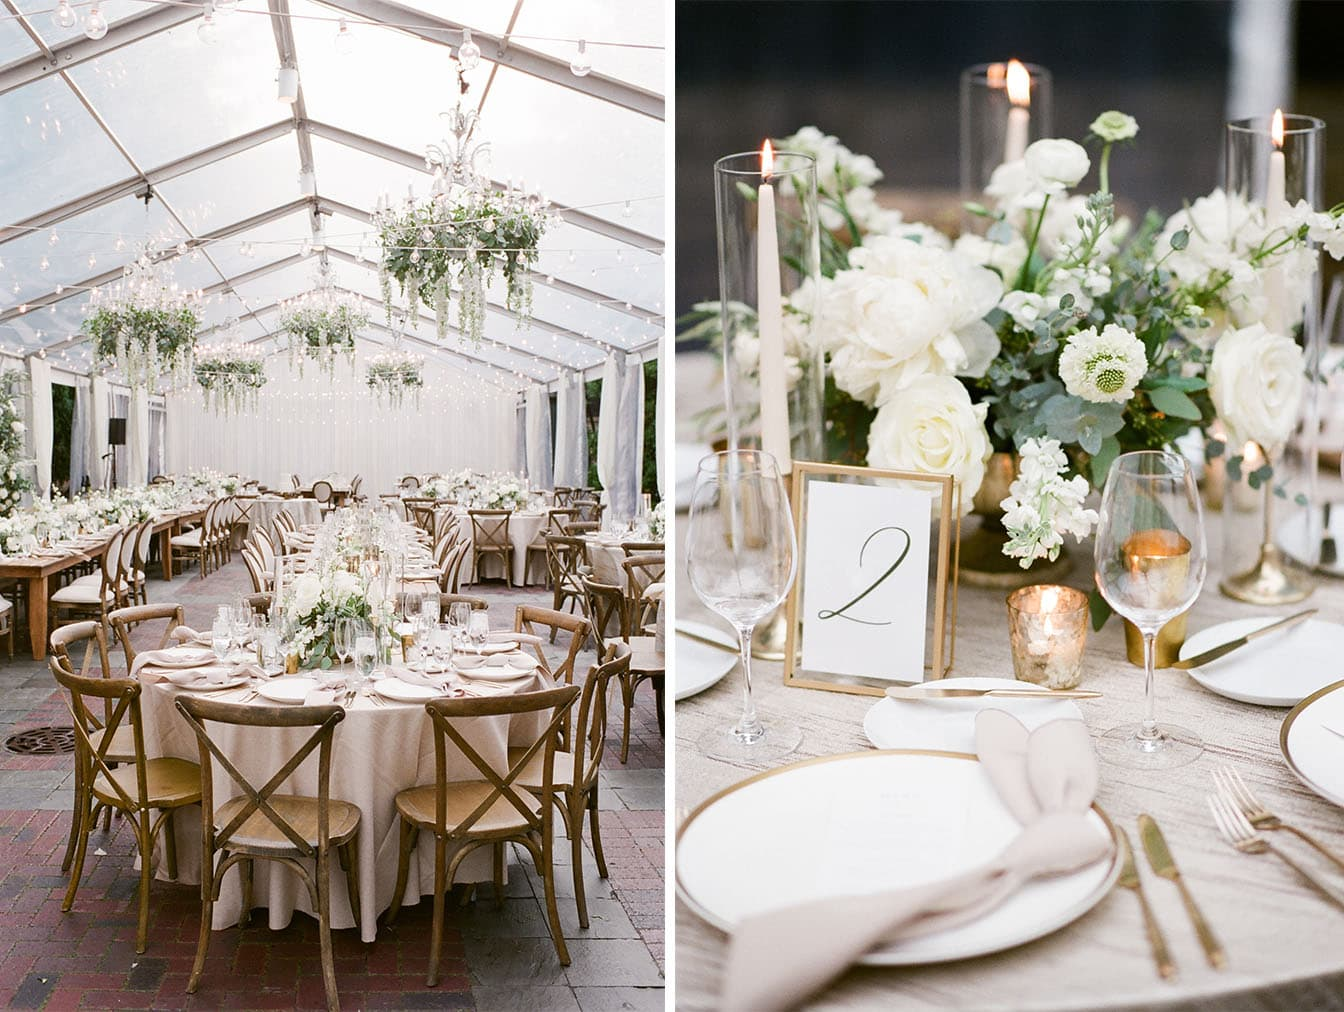 White and green wedding decor florals at Chicago Illuminating Company